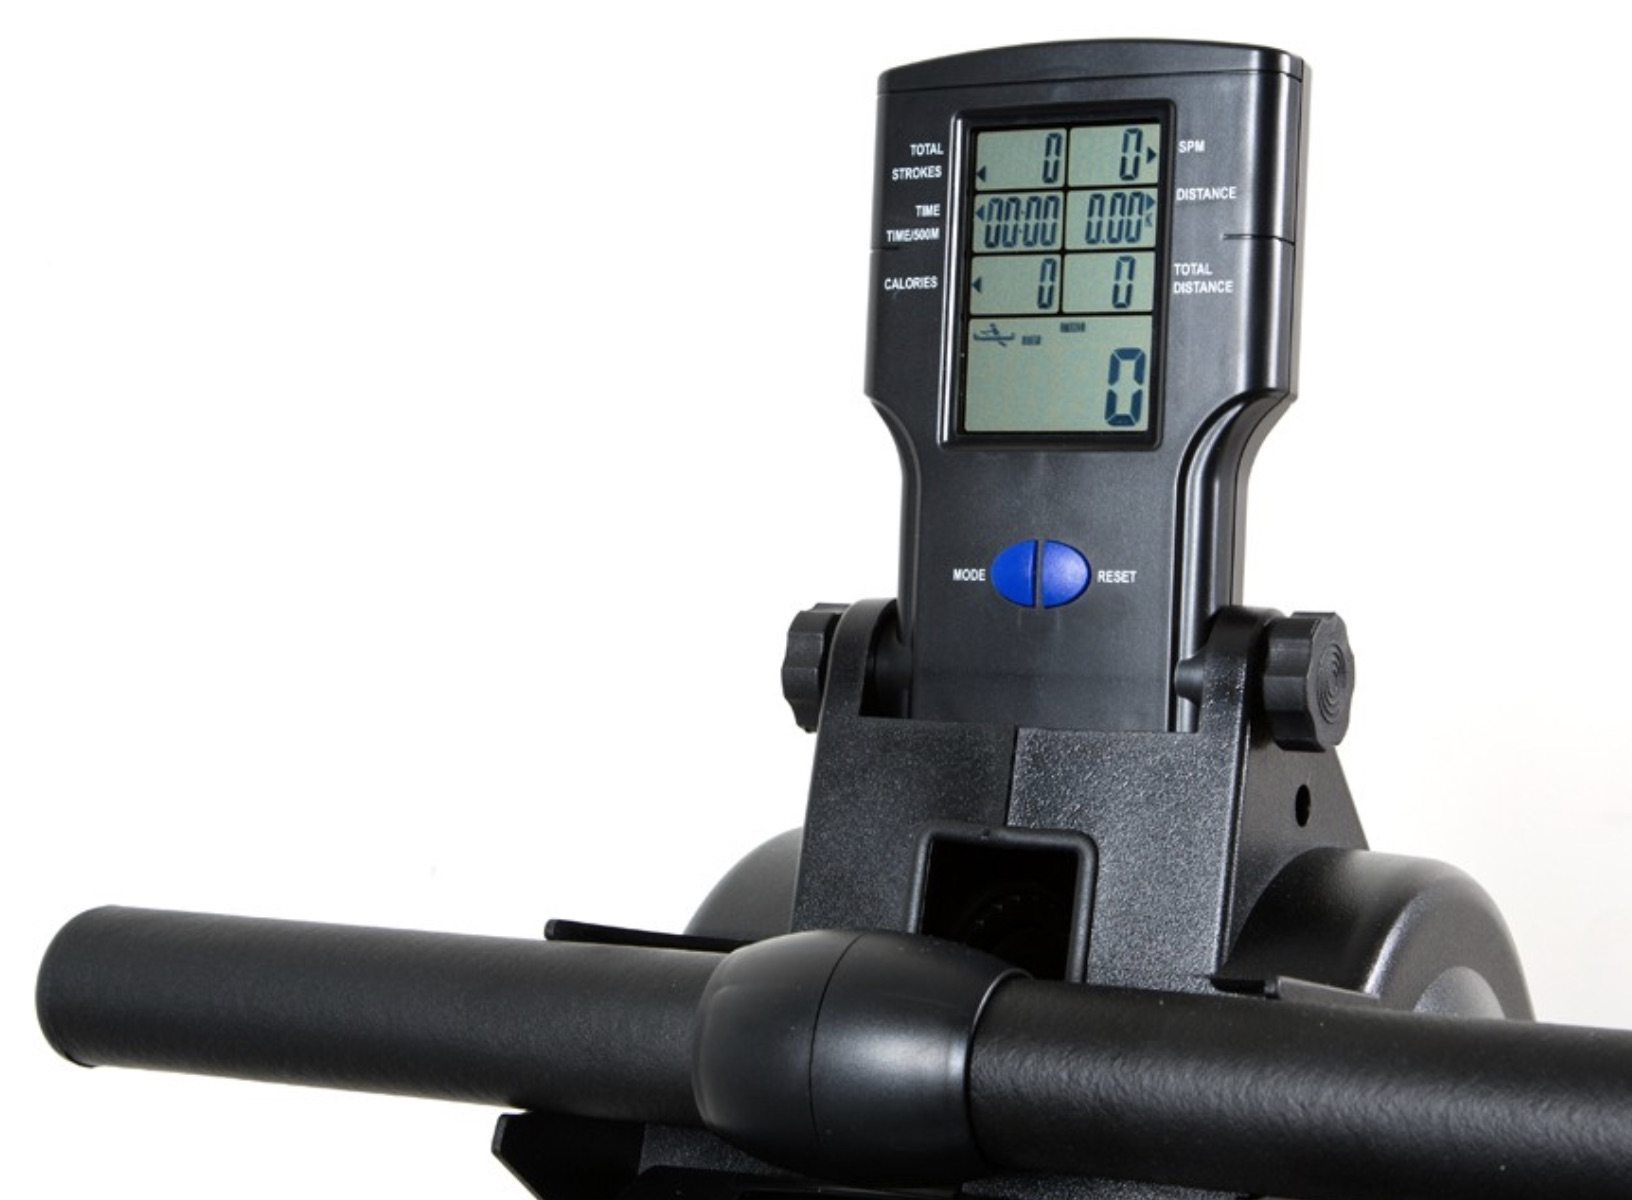 BodyCraft VR200 Rower Monitor